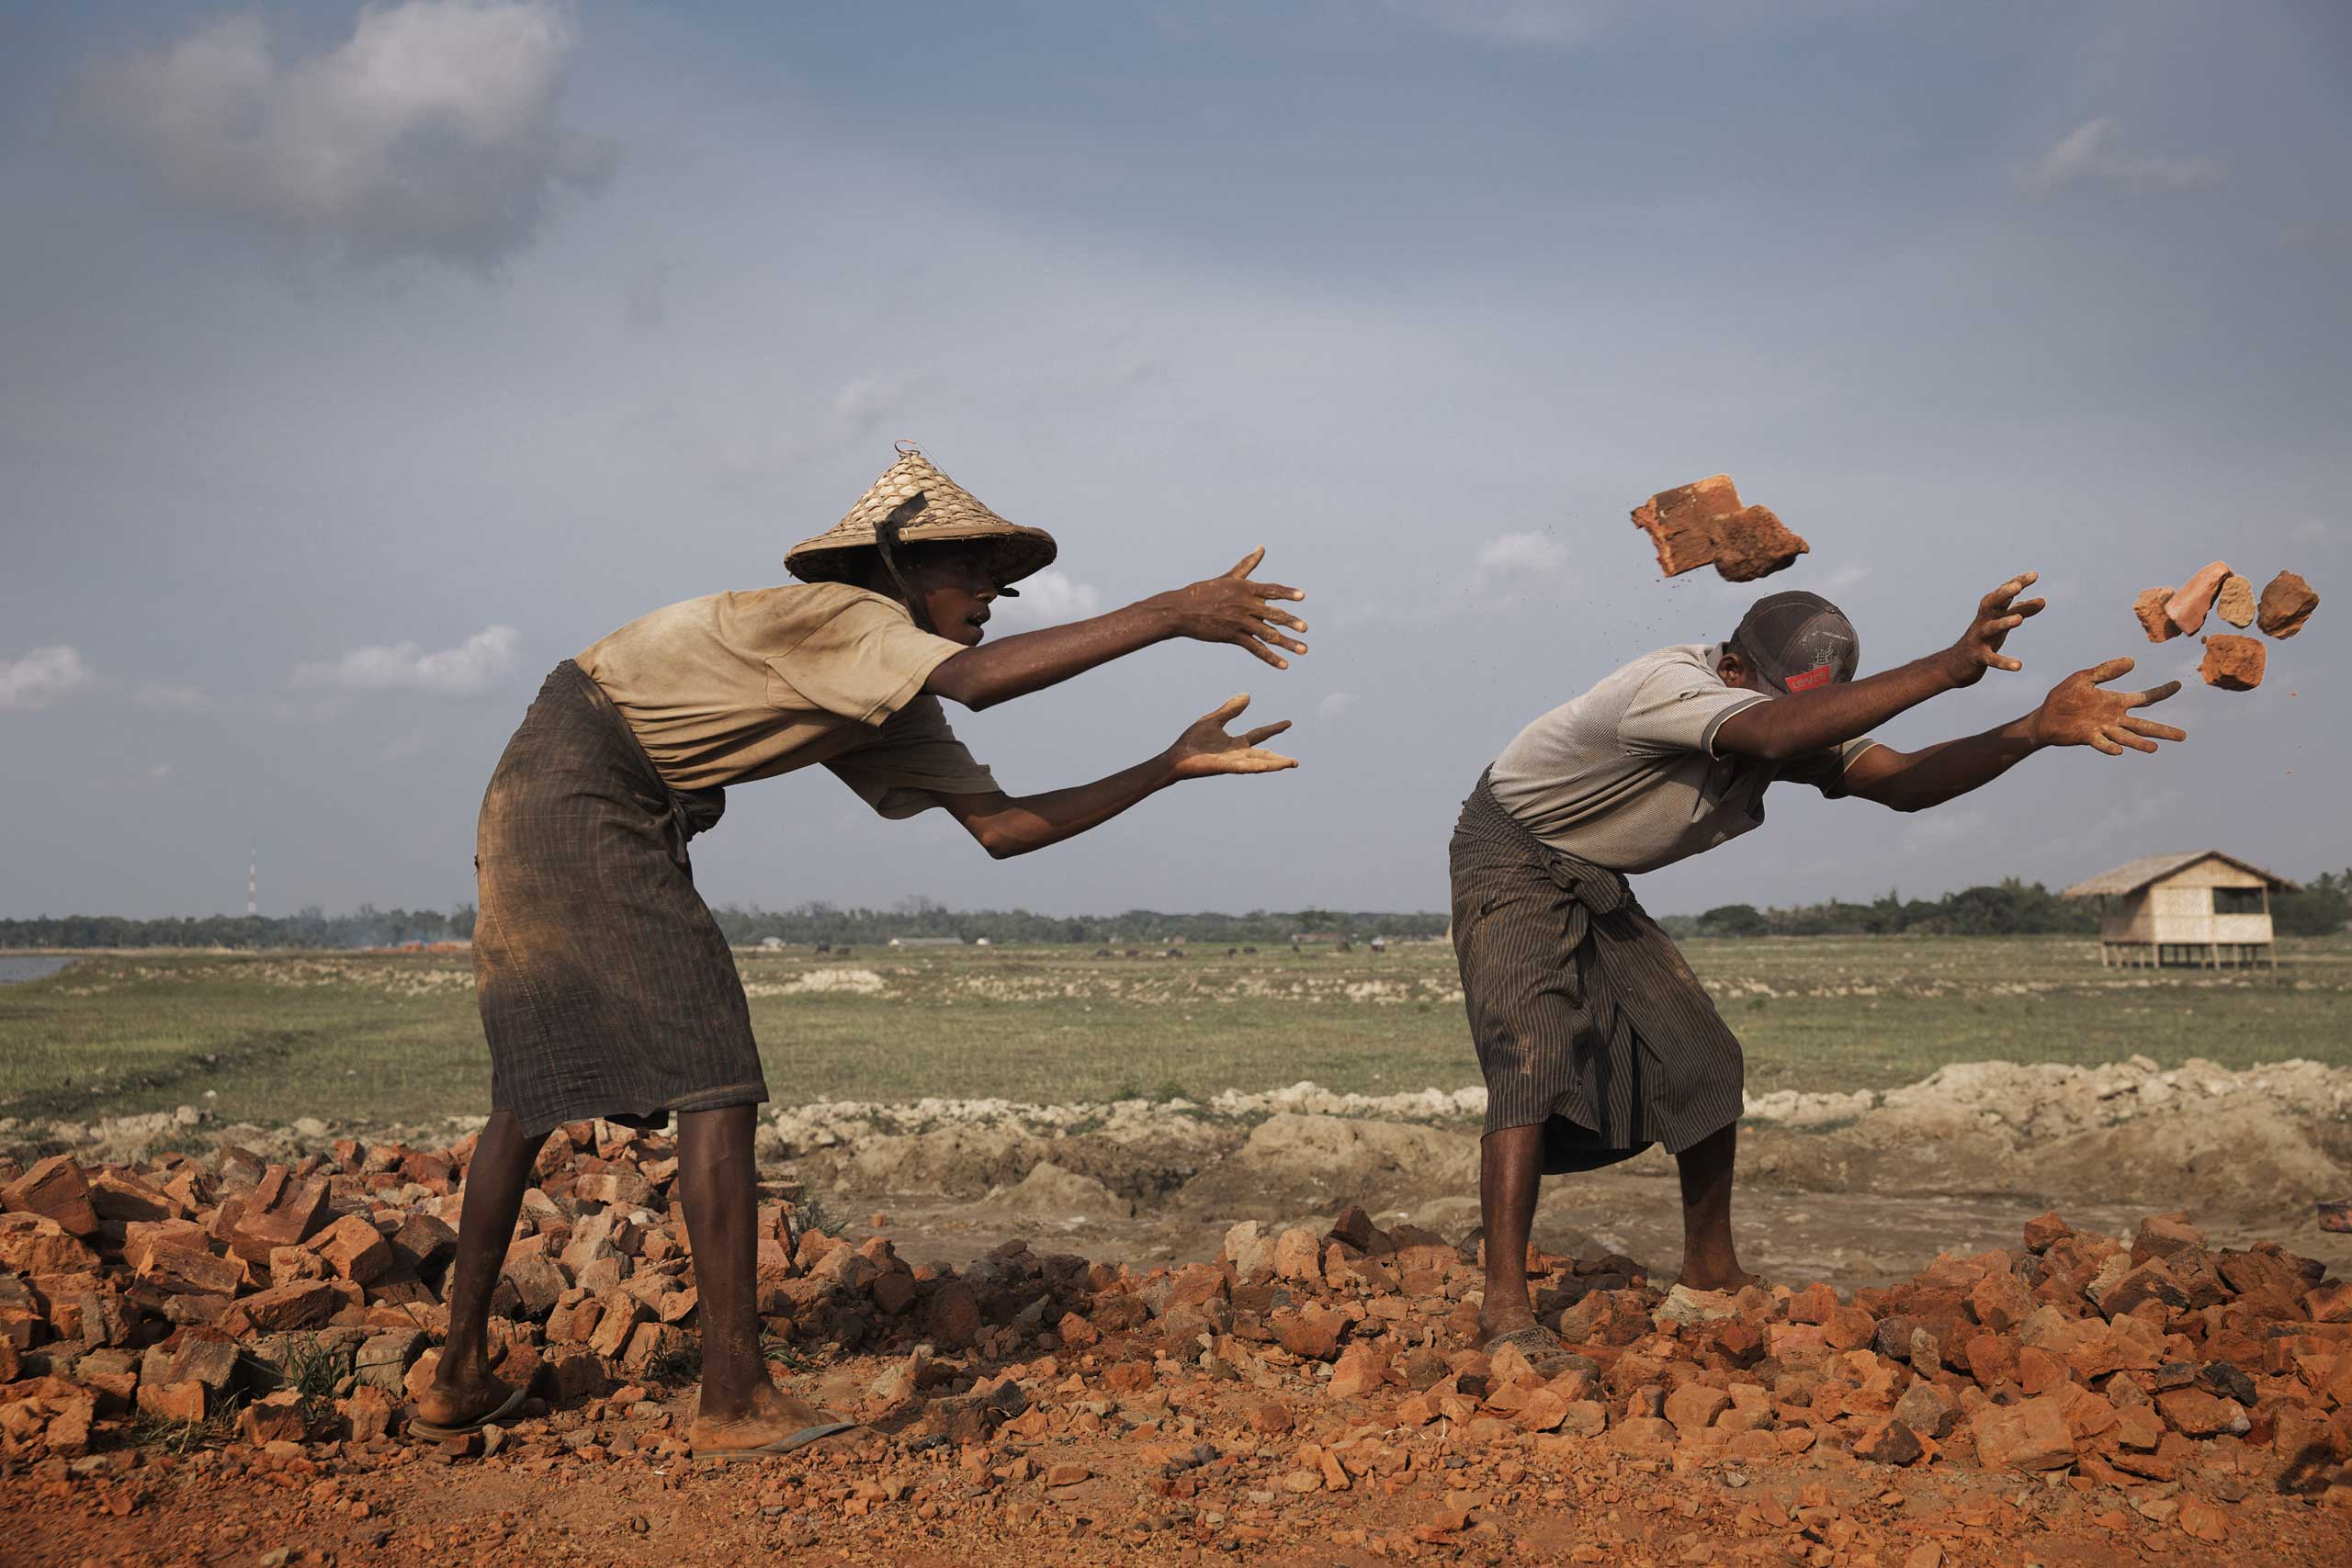 Workers at a brick kiln are seen tossing bricks. More than 140,000 minority Rohingya Muslims have been forced to live in camps, where disease and despair have taken root.From  The Rohingya, Burma's Forgotten Muslims by James Nachtwey